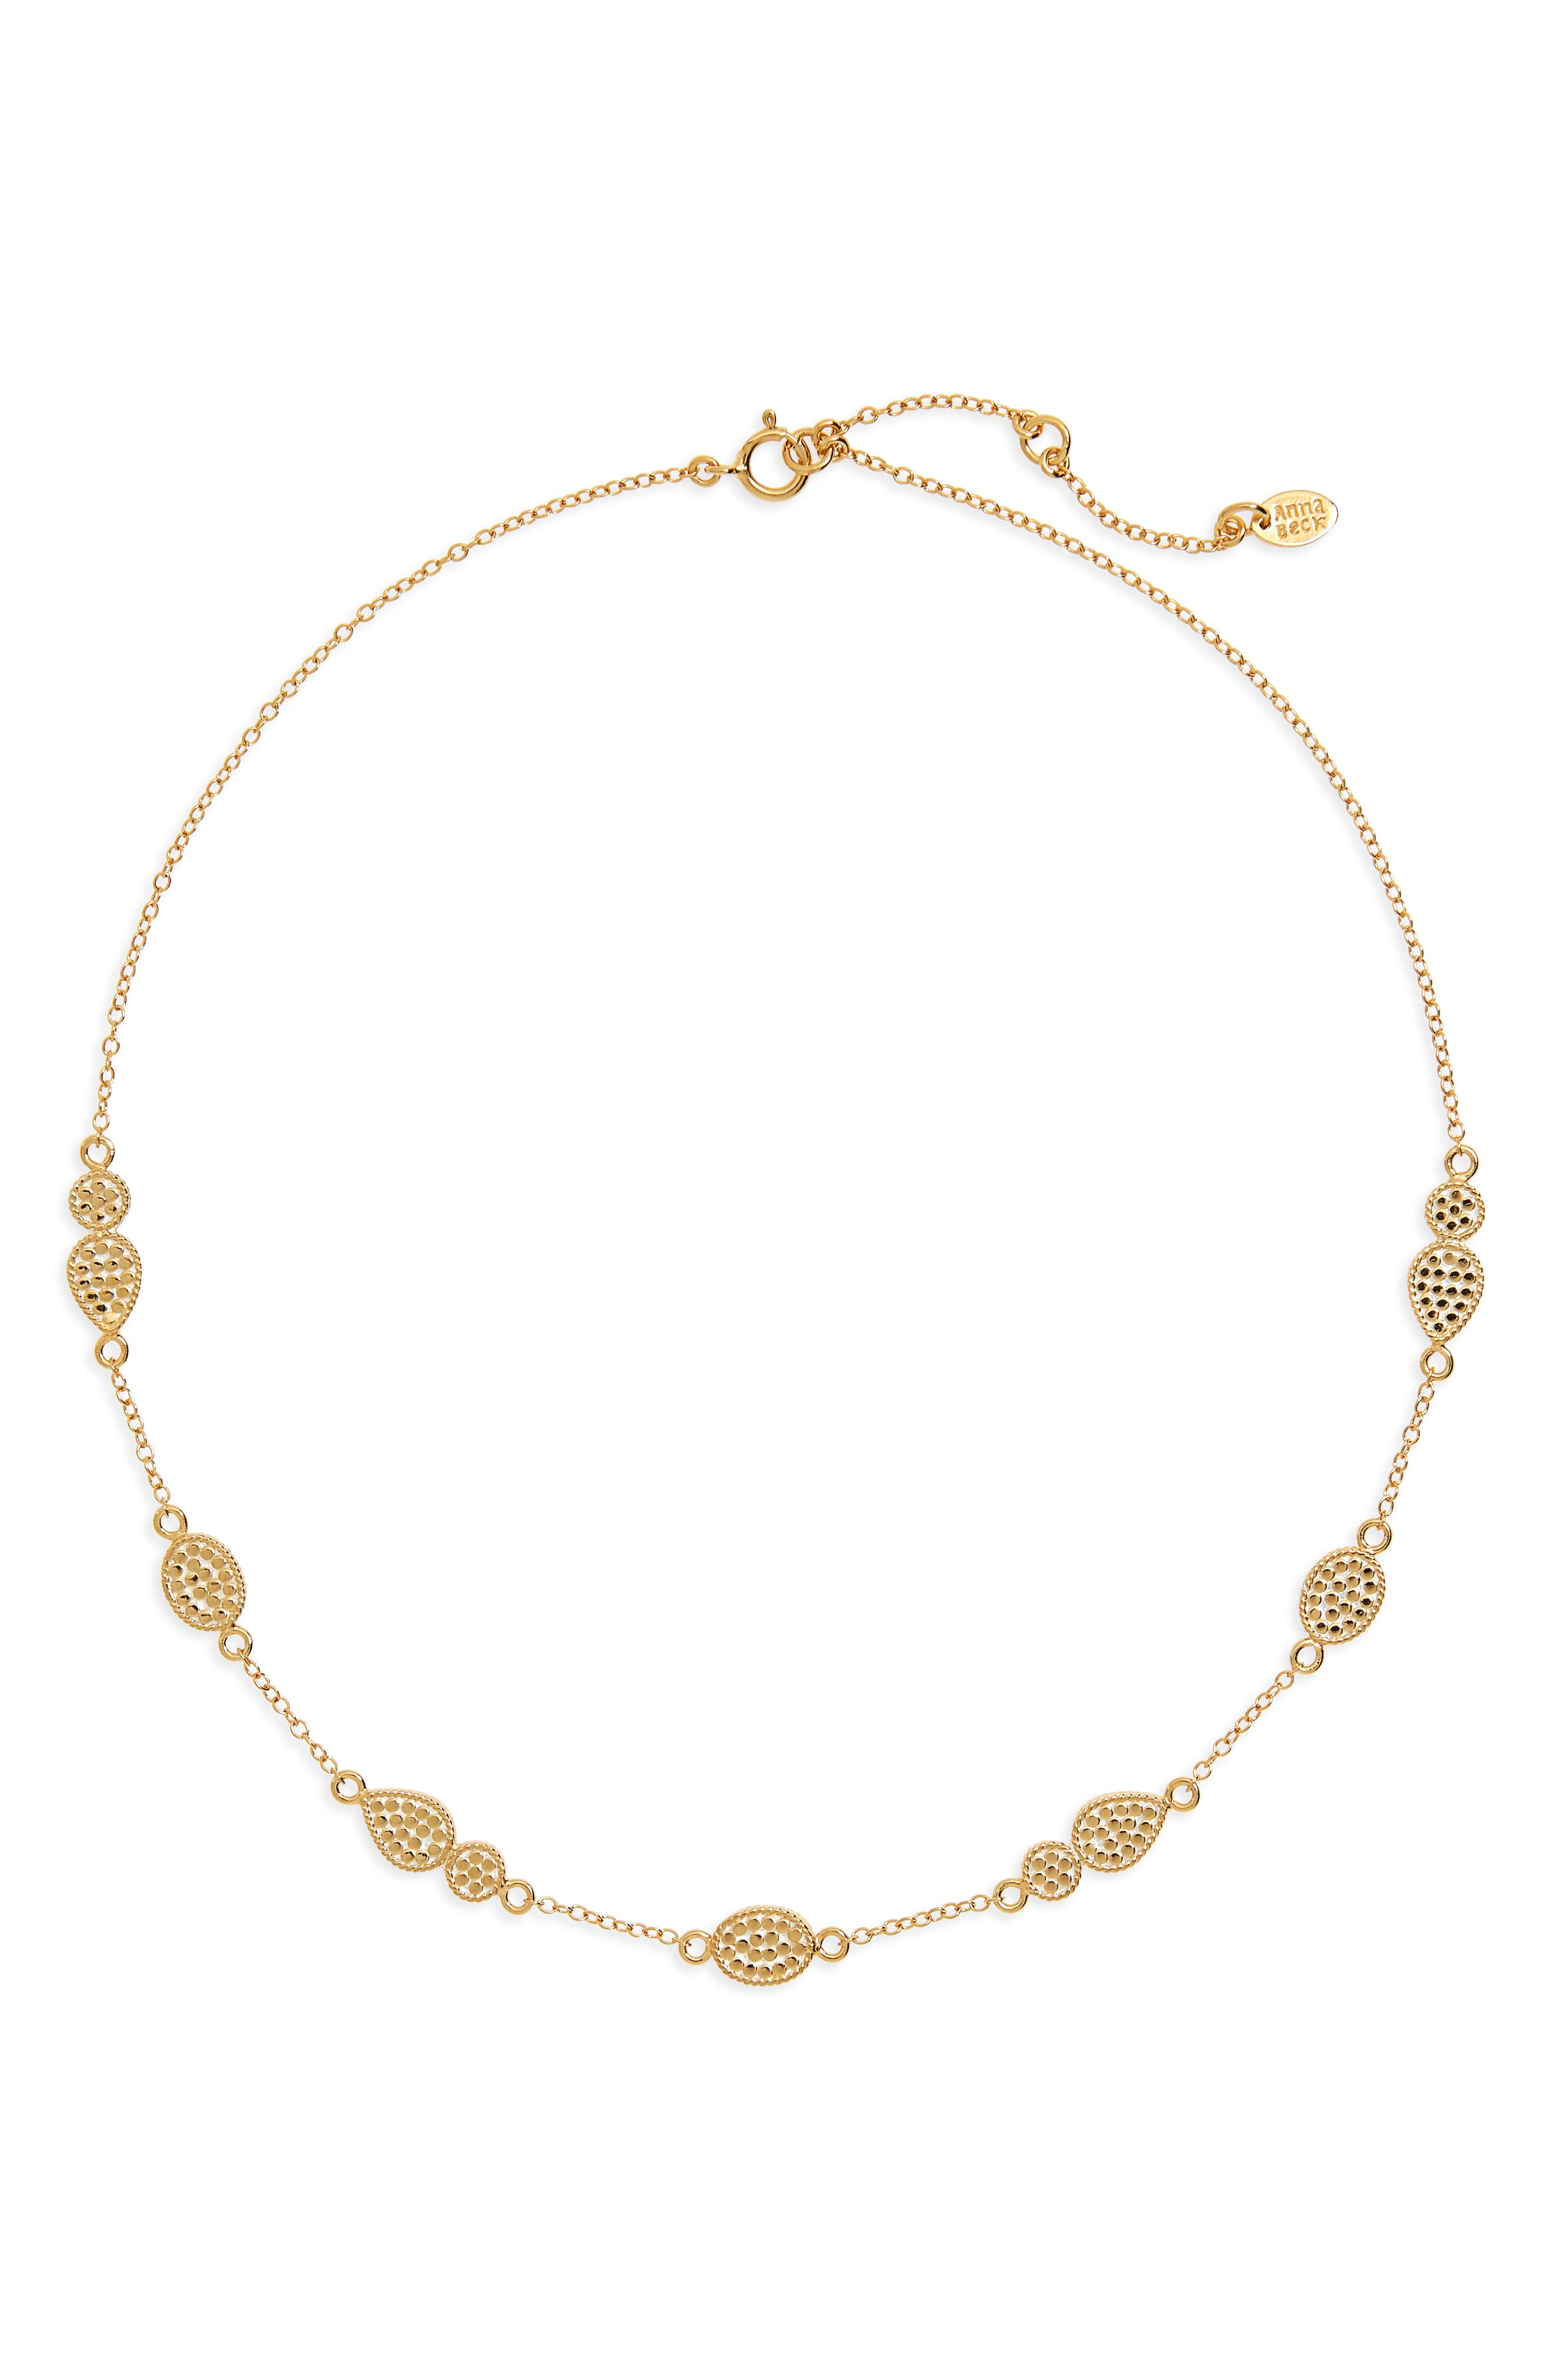 Gold Station Collar Necklace,                         Main,                         color, GOLD